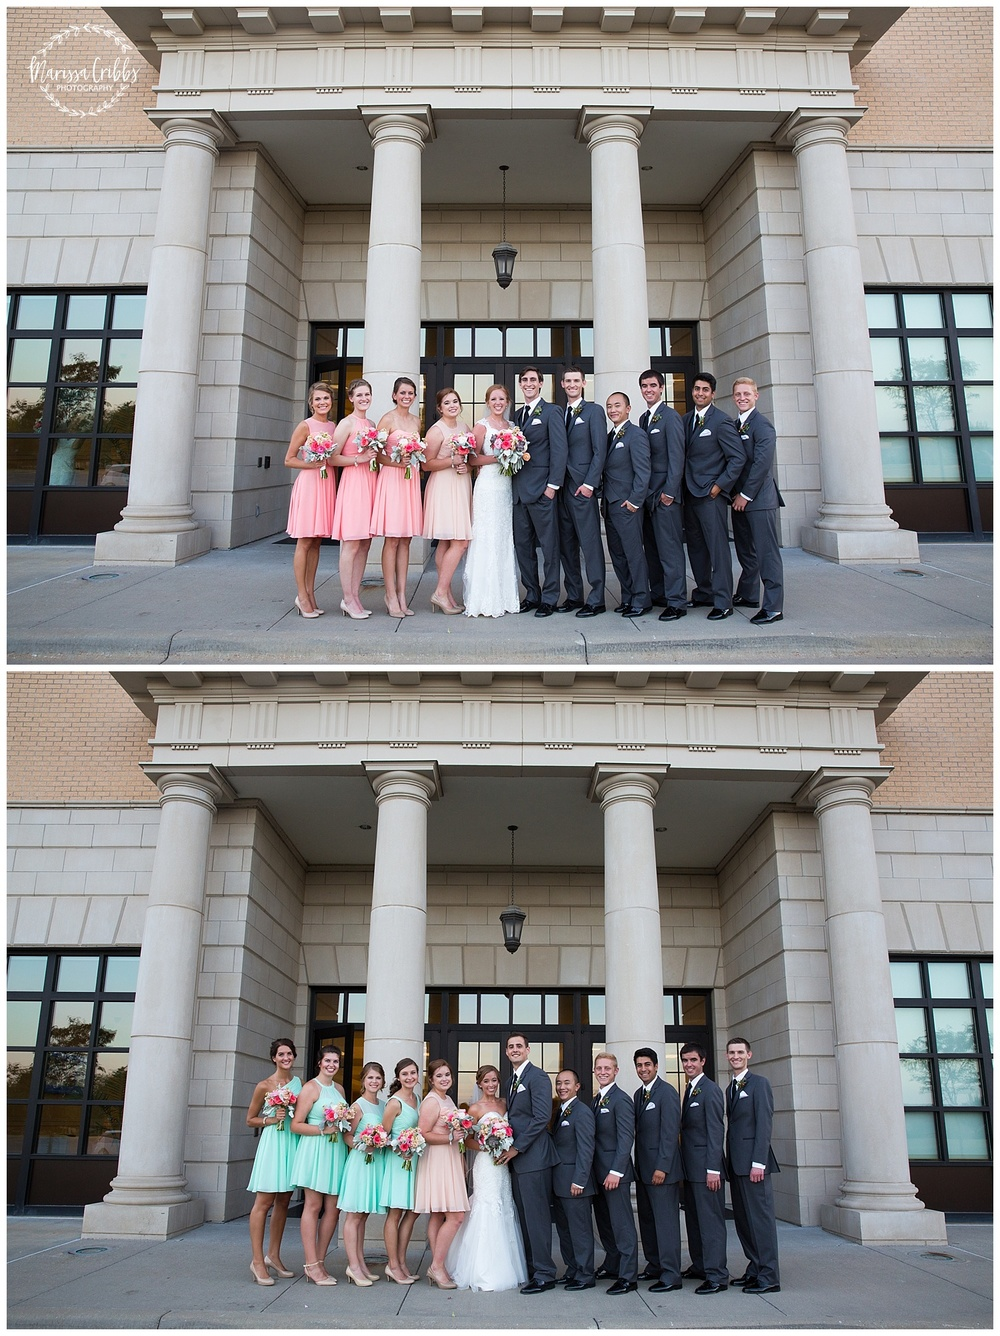 Twin Double Wedding | Union Horse Distilling Co. | Marissa Cribbs Photography | KC Weddings_0161.jpg